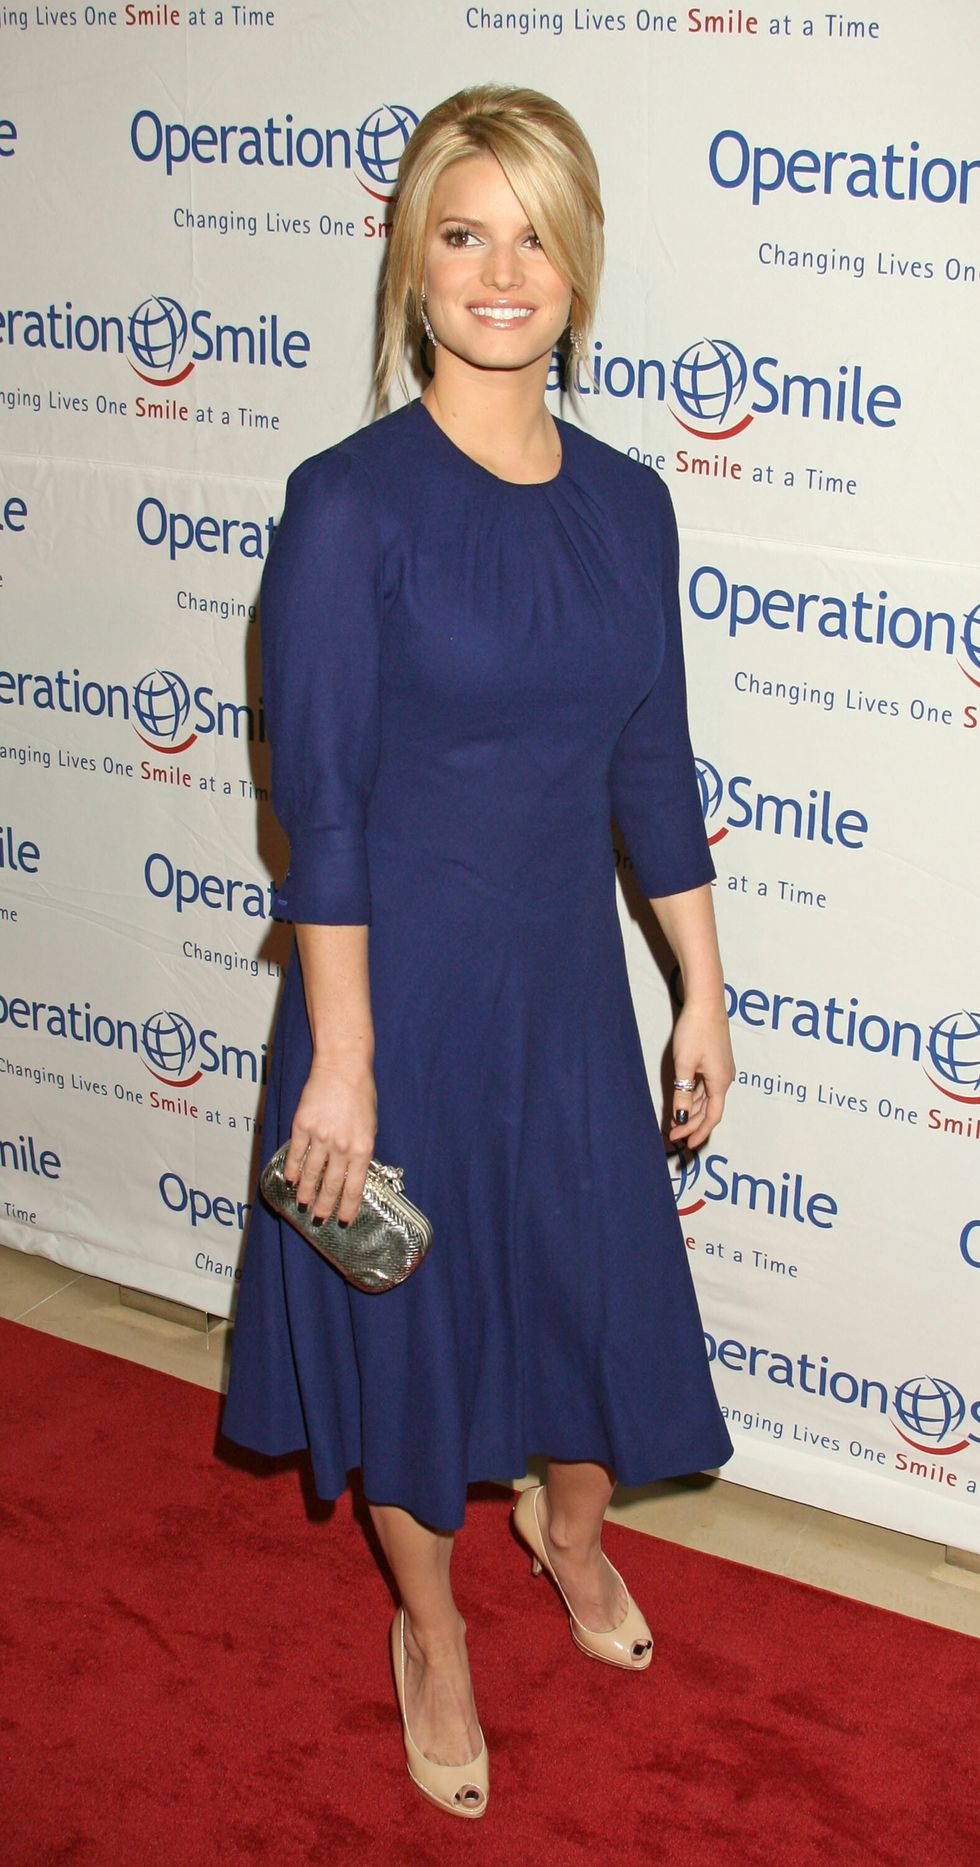 jessica-simpson-operation-smile-25th-anniversary-gala-01